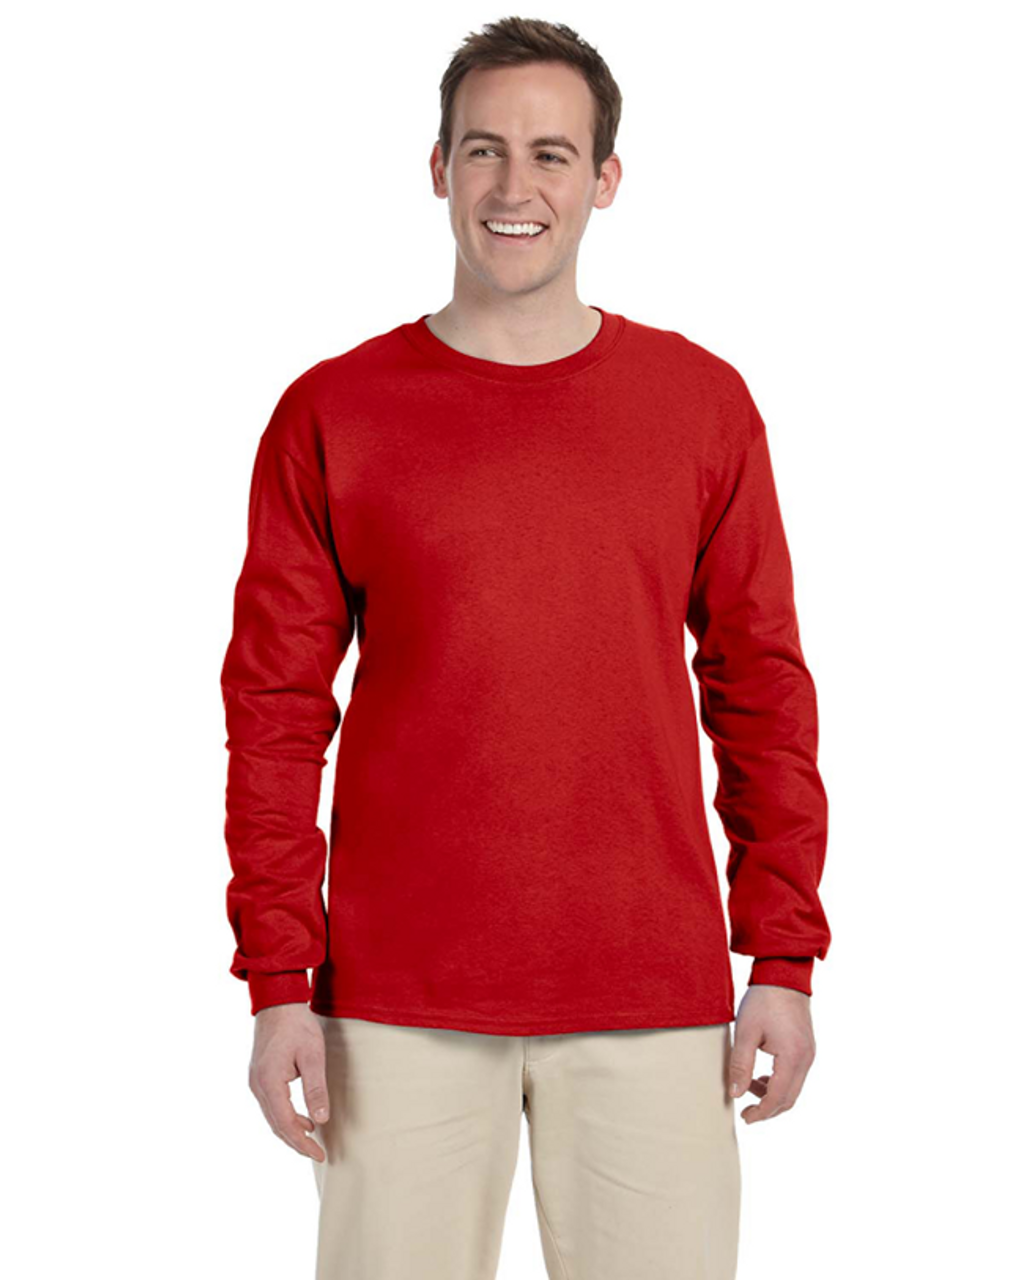 True Red - 4930 Fruit of the Loom 100% Heavy Cotton HD® Long-Sleeve T-Shirt | Blankclothing.ca